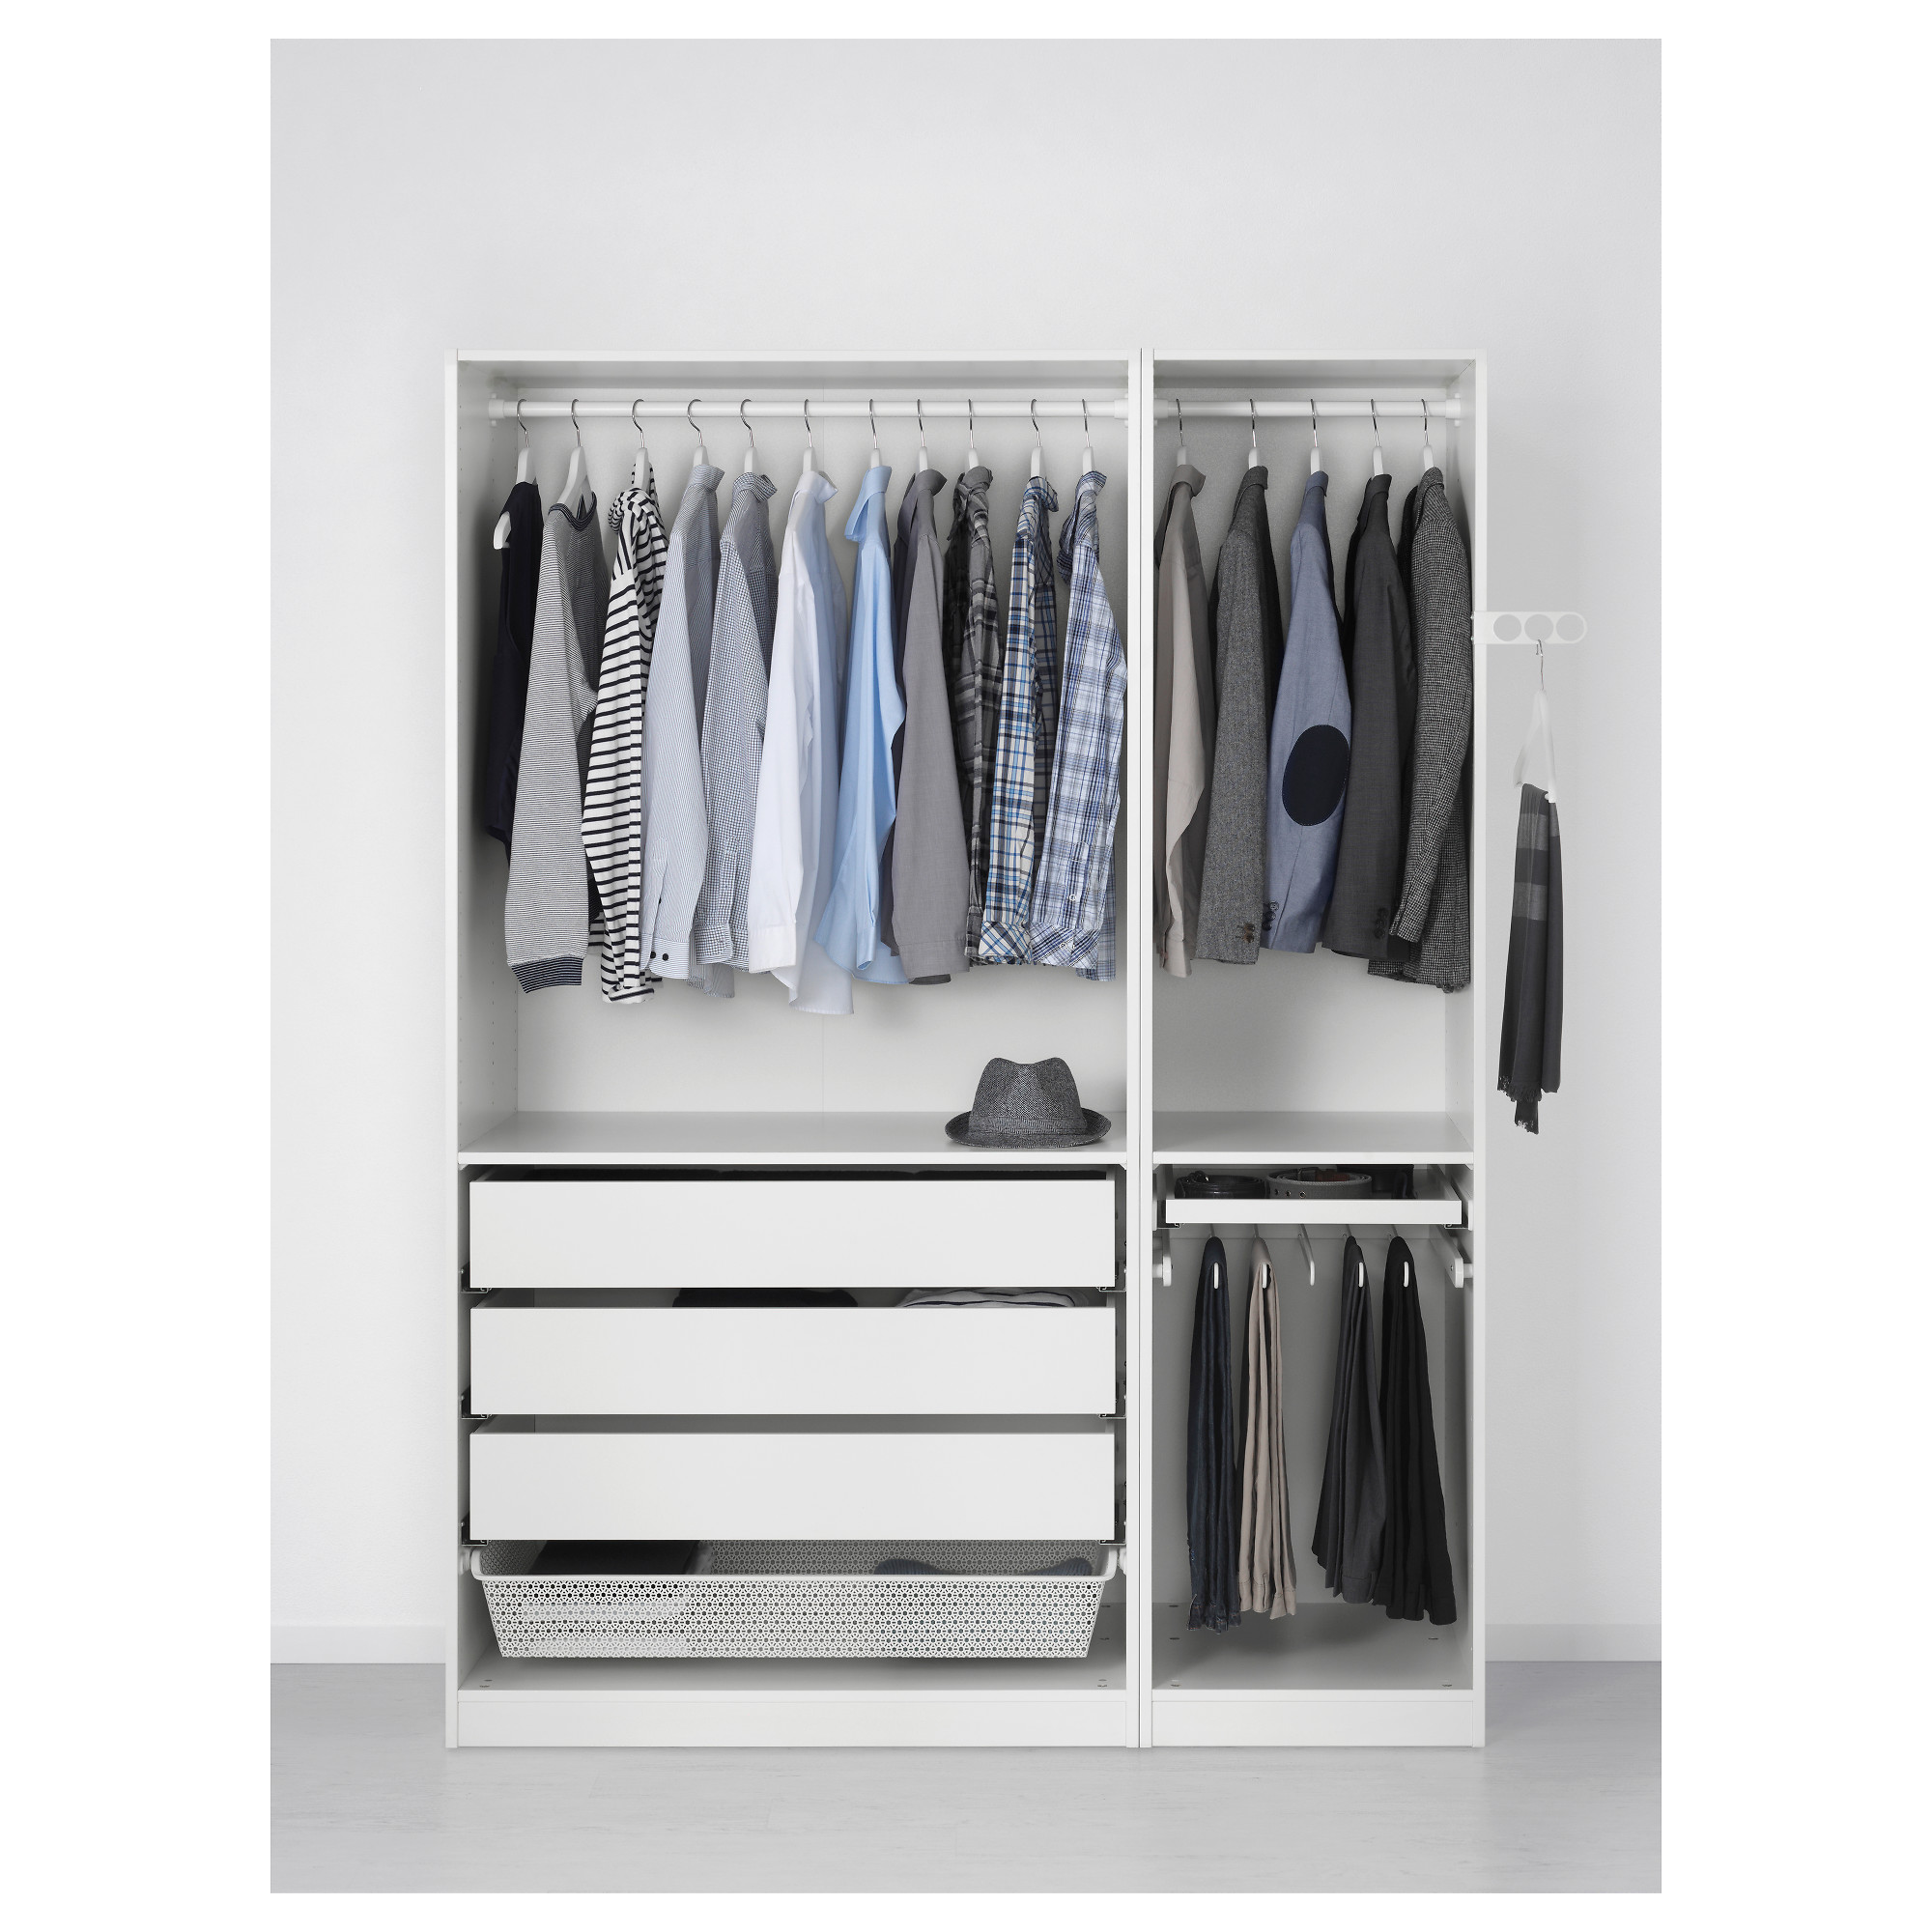 Wardrobe Closet Ikea | Ikea Drawers for Inside Wardrobe | Ikea Wardrobe